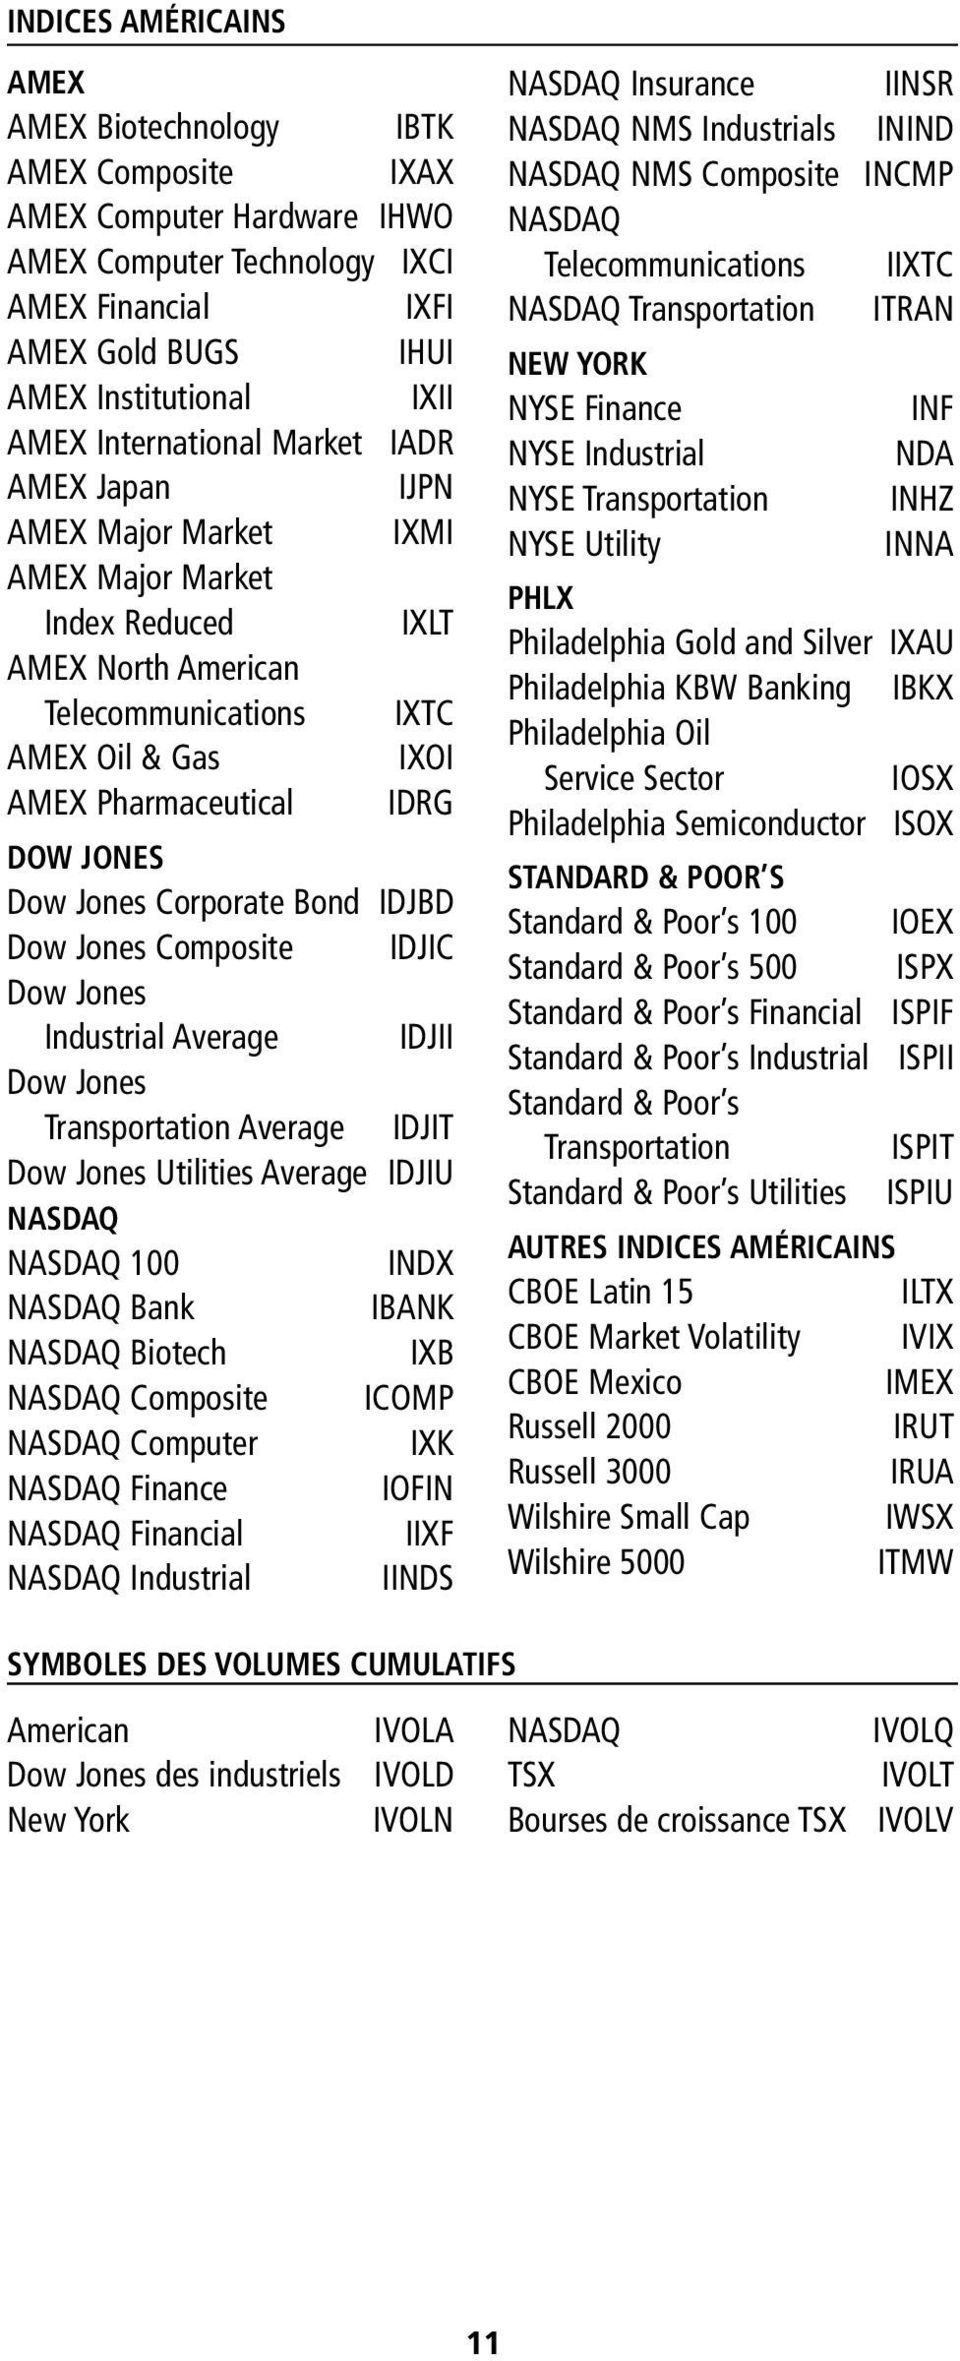 JONES Dow Jones Corporate Bond IDJBD Dow Jones Composite IDJIC Dow Jones Industrial Average IDJII Dow Jones Transportation Average IDJIT Dow Jones Utilities Average IDJIU NASDAQ NASDAQ 100 INDX